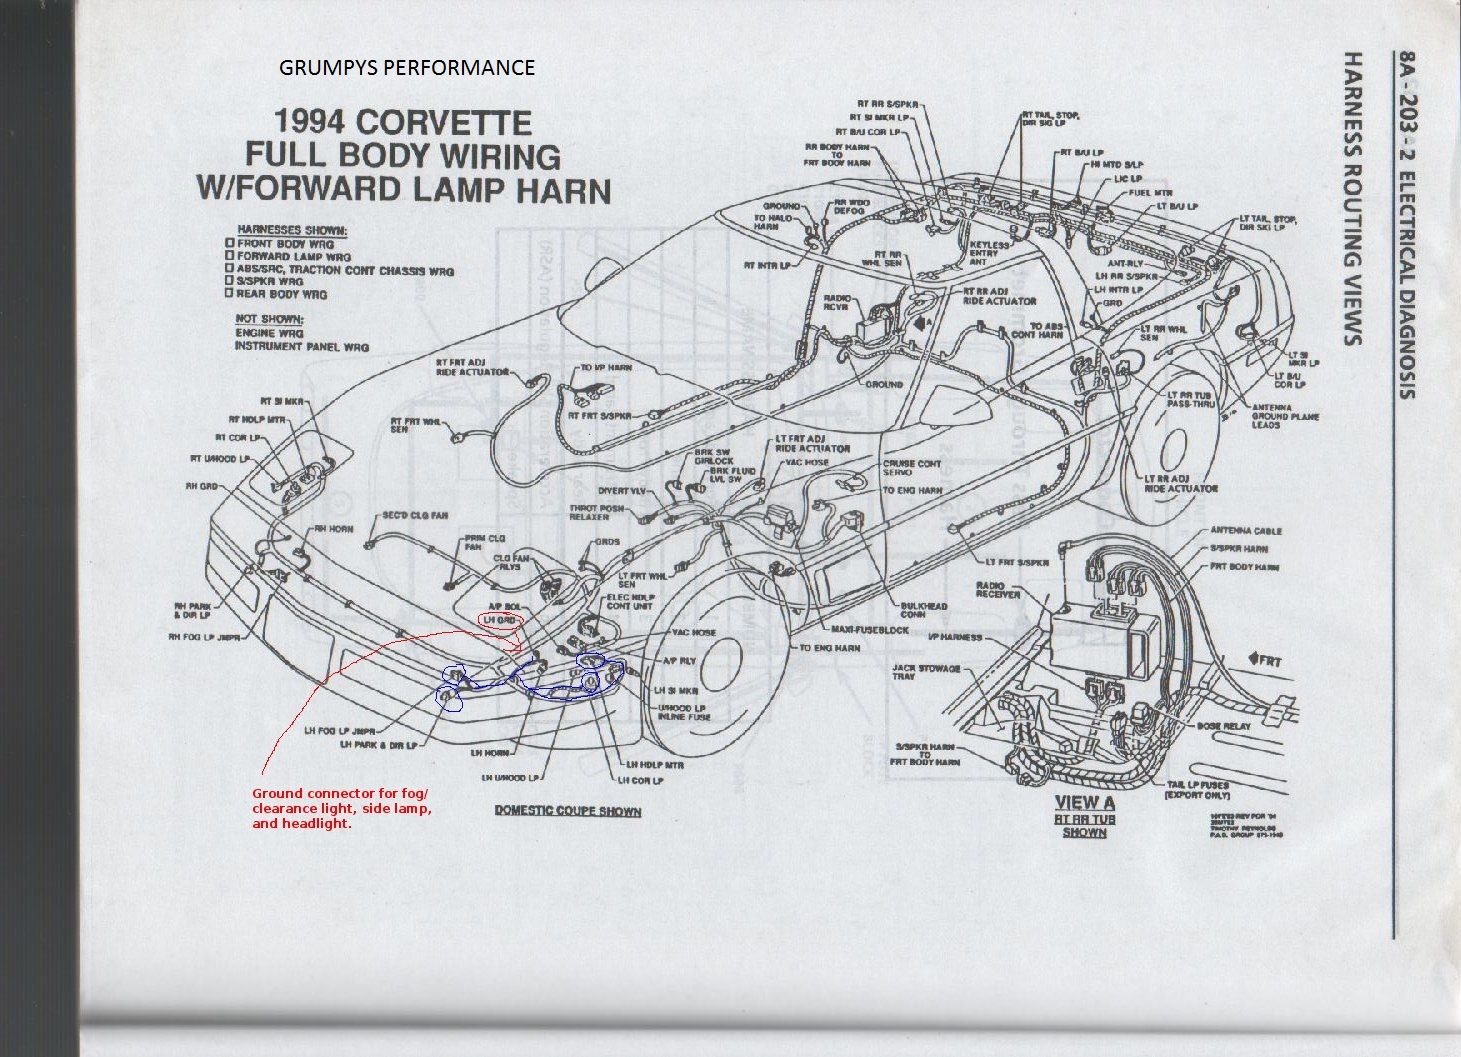 1986 chevy corvette wiring harness wiring diagram general 82 Corvette Wiring Diagram